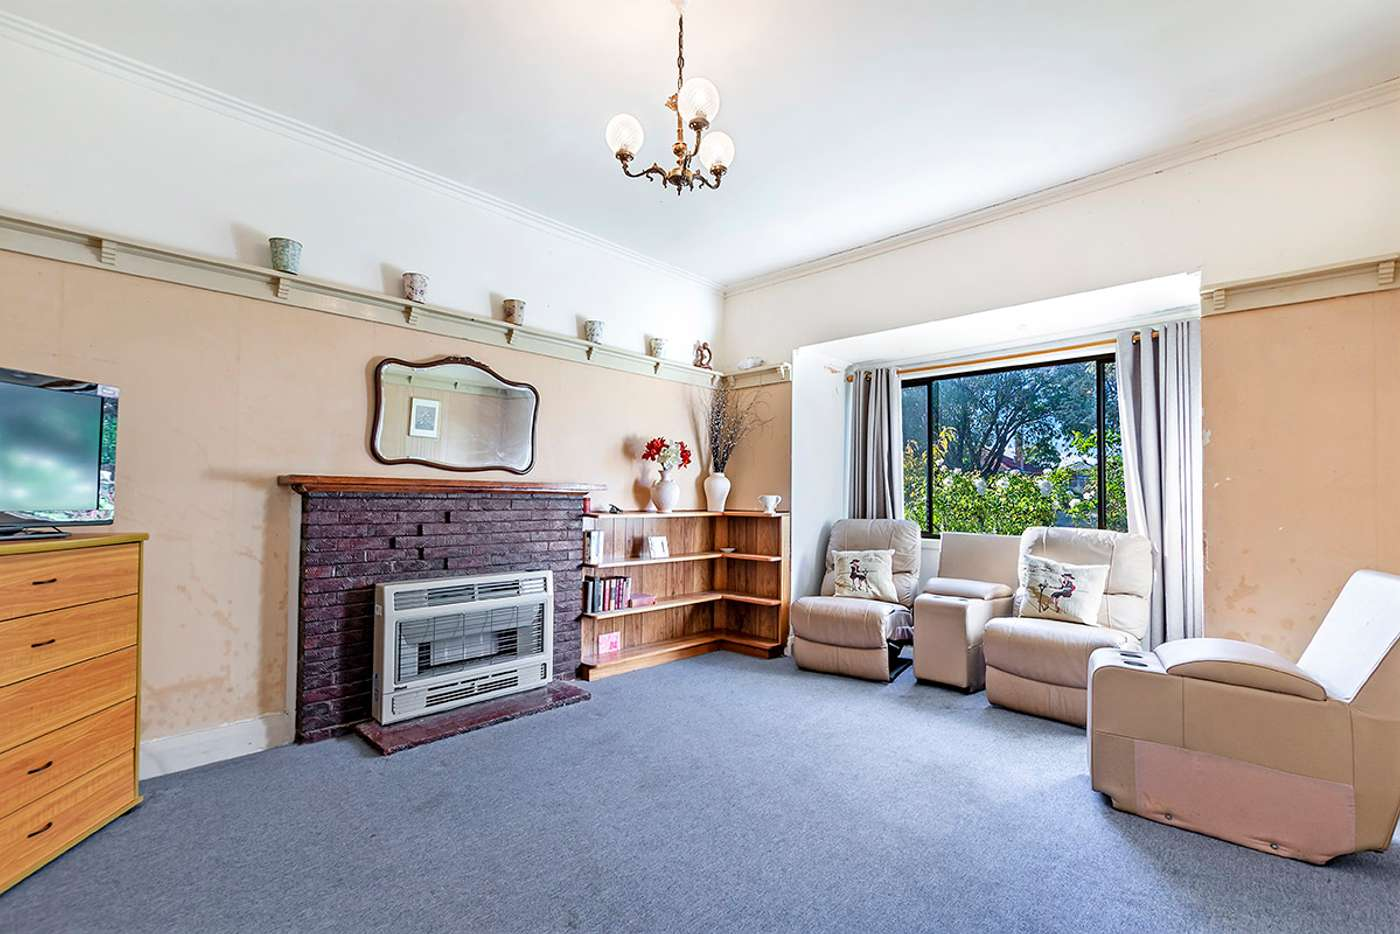 Fifth view of Homely house listing, 5 Townsend Street, Portland VIC 3305